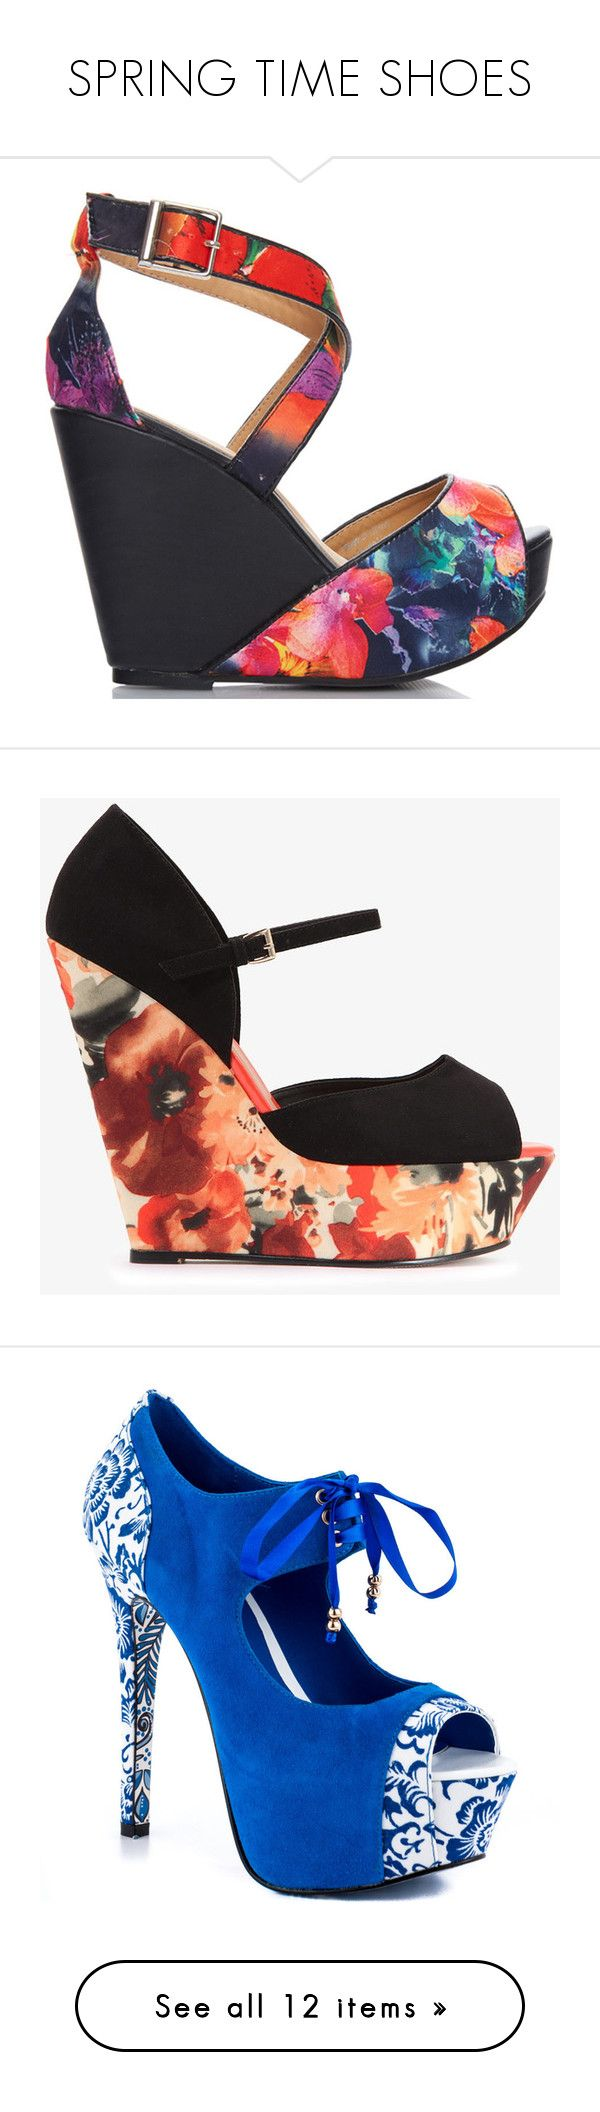 """""""SPRING TIME SHOES"""" by g-babydoll03 on Polyvore featuring shoes, sandals, floral wedge sandals, strappy high heel sandals, high heel platform sandals, high heel wedge sandals, high heel sandals, wedge heeled shoes, flower print shoes and wedge shoes"""